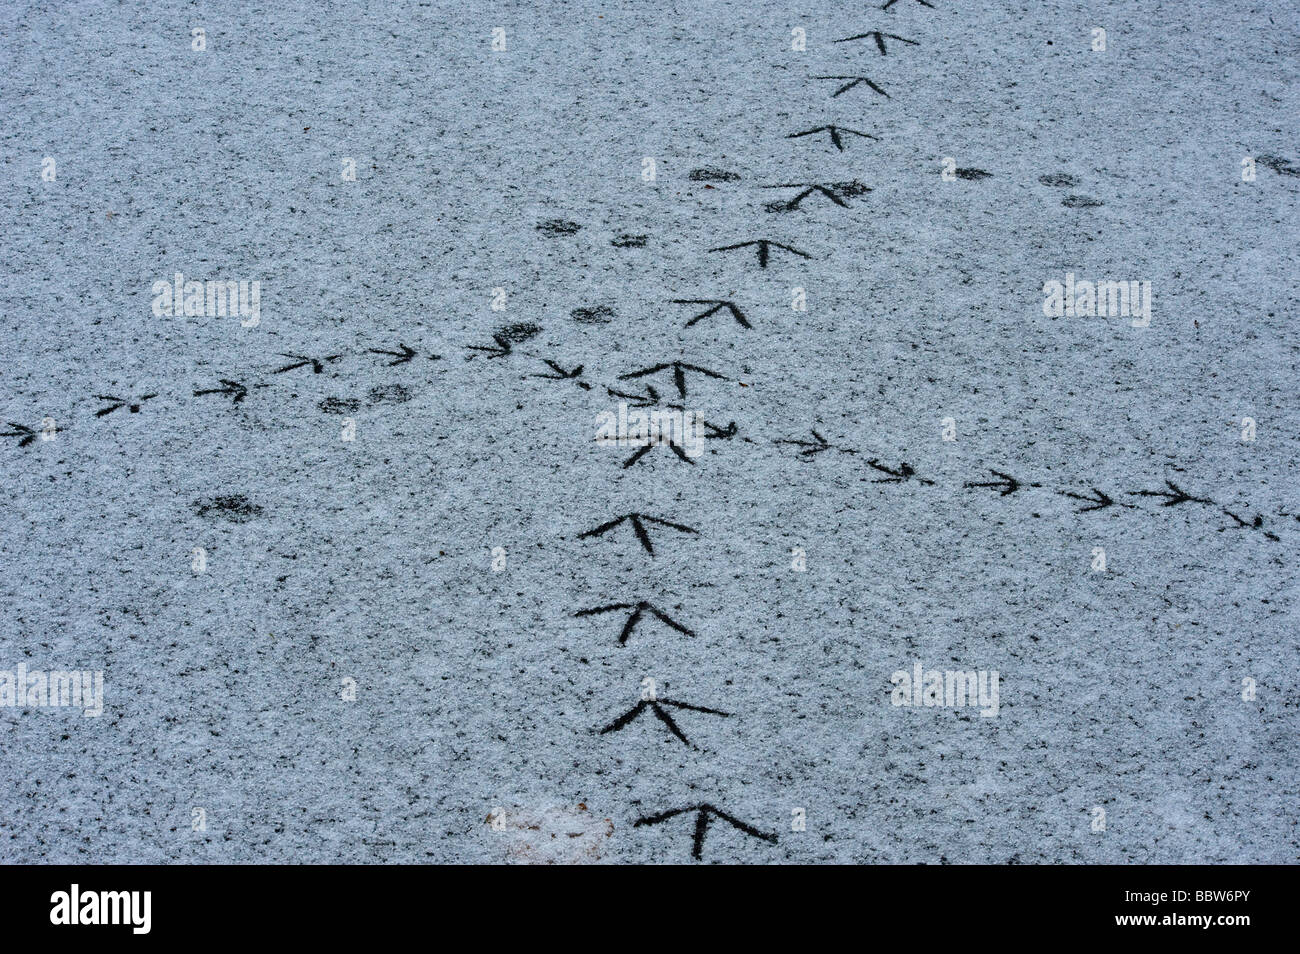 Crossroads where wildfowl tracks met on snow covered ice Stock Photo